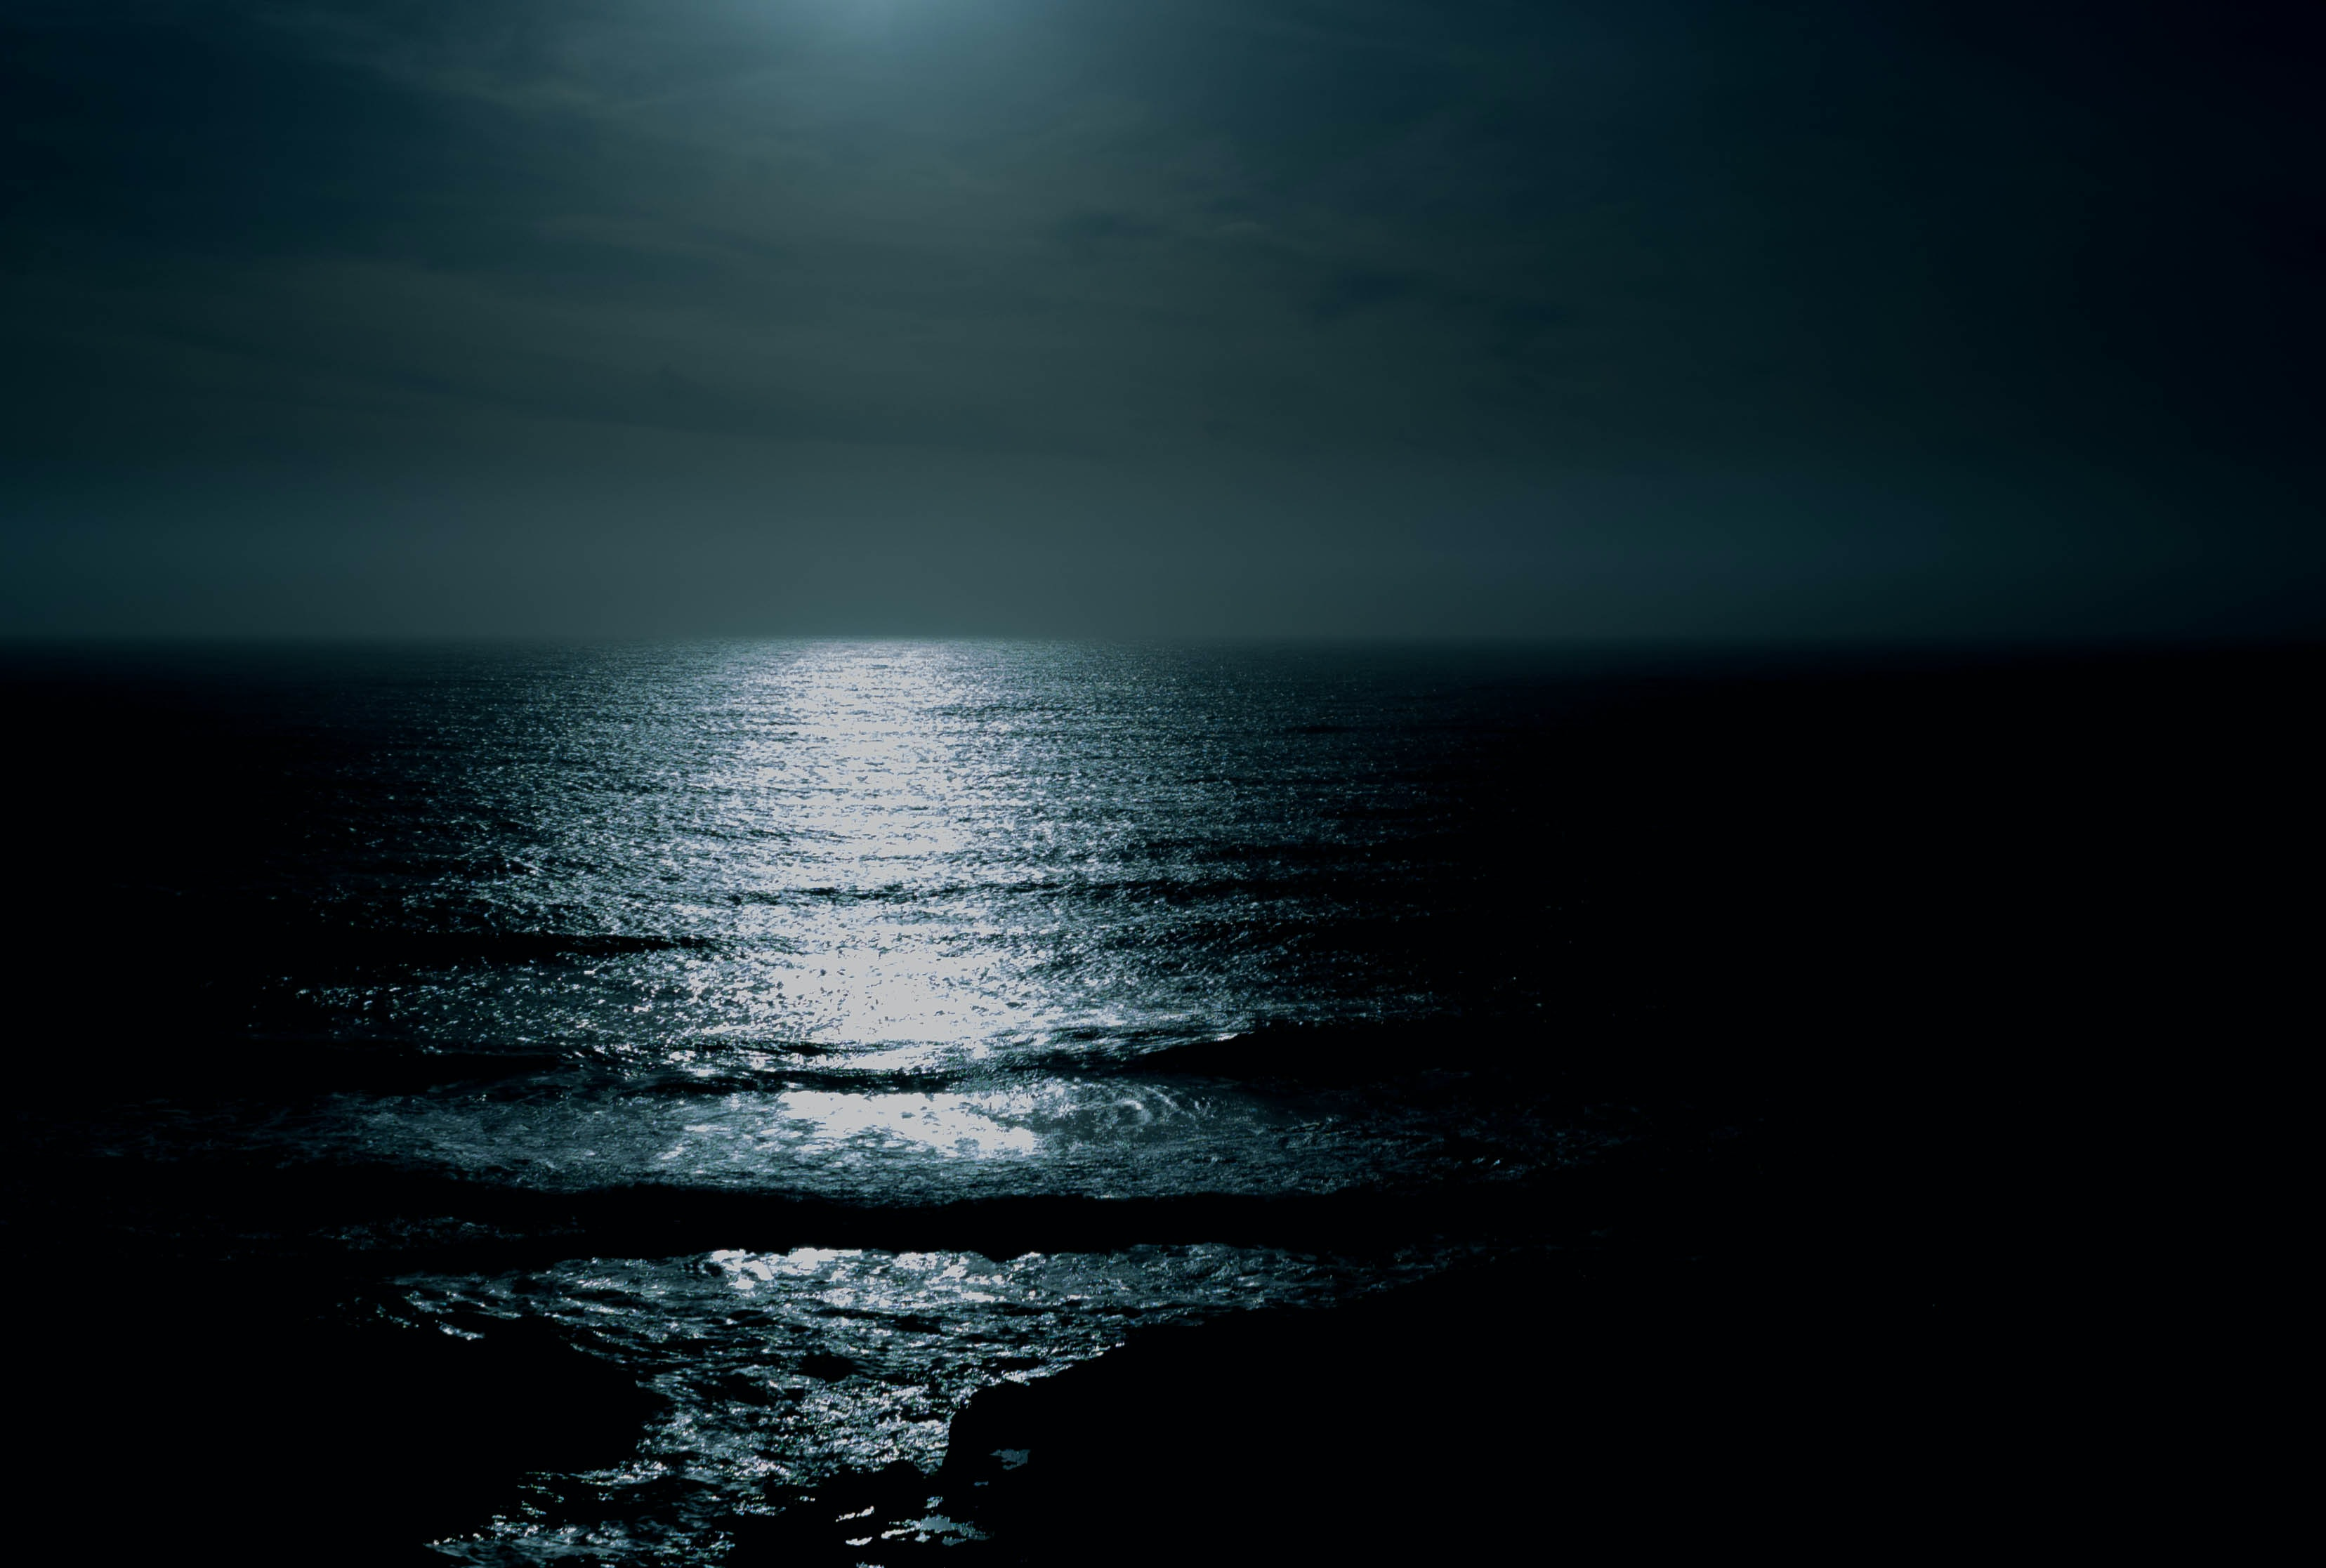 body of water under cloudy sky at night